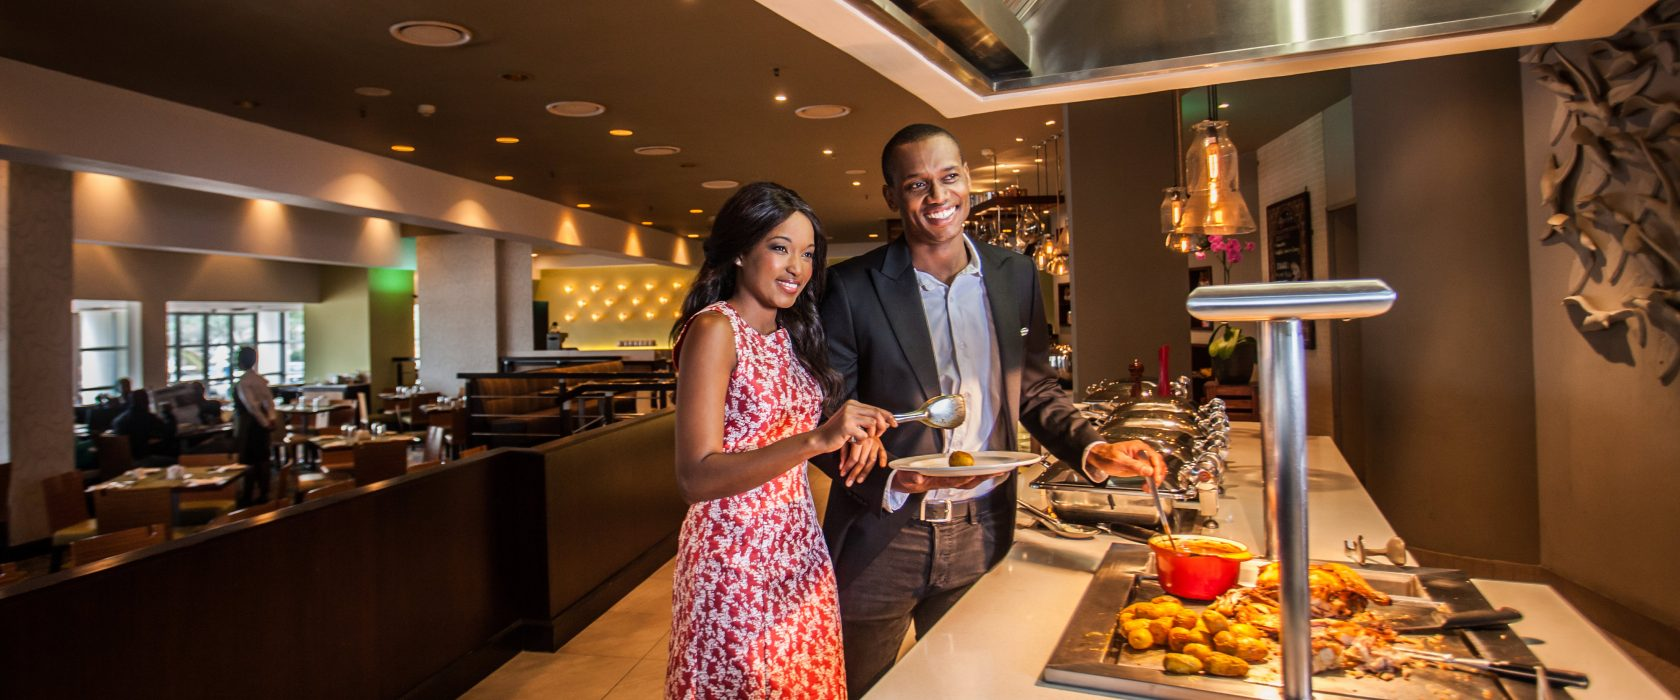 Garden Court Marine Parade's award winning service offers a great choice of self-service workstations and restaurant where guests can enjoy breakfast and dinner daily